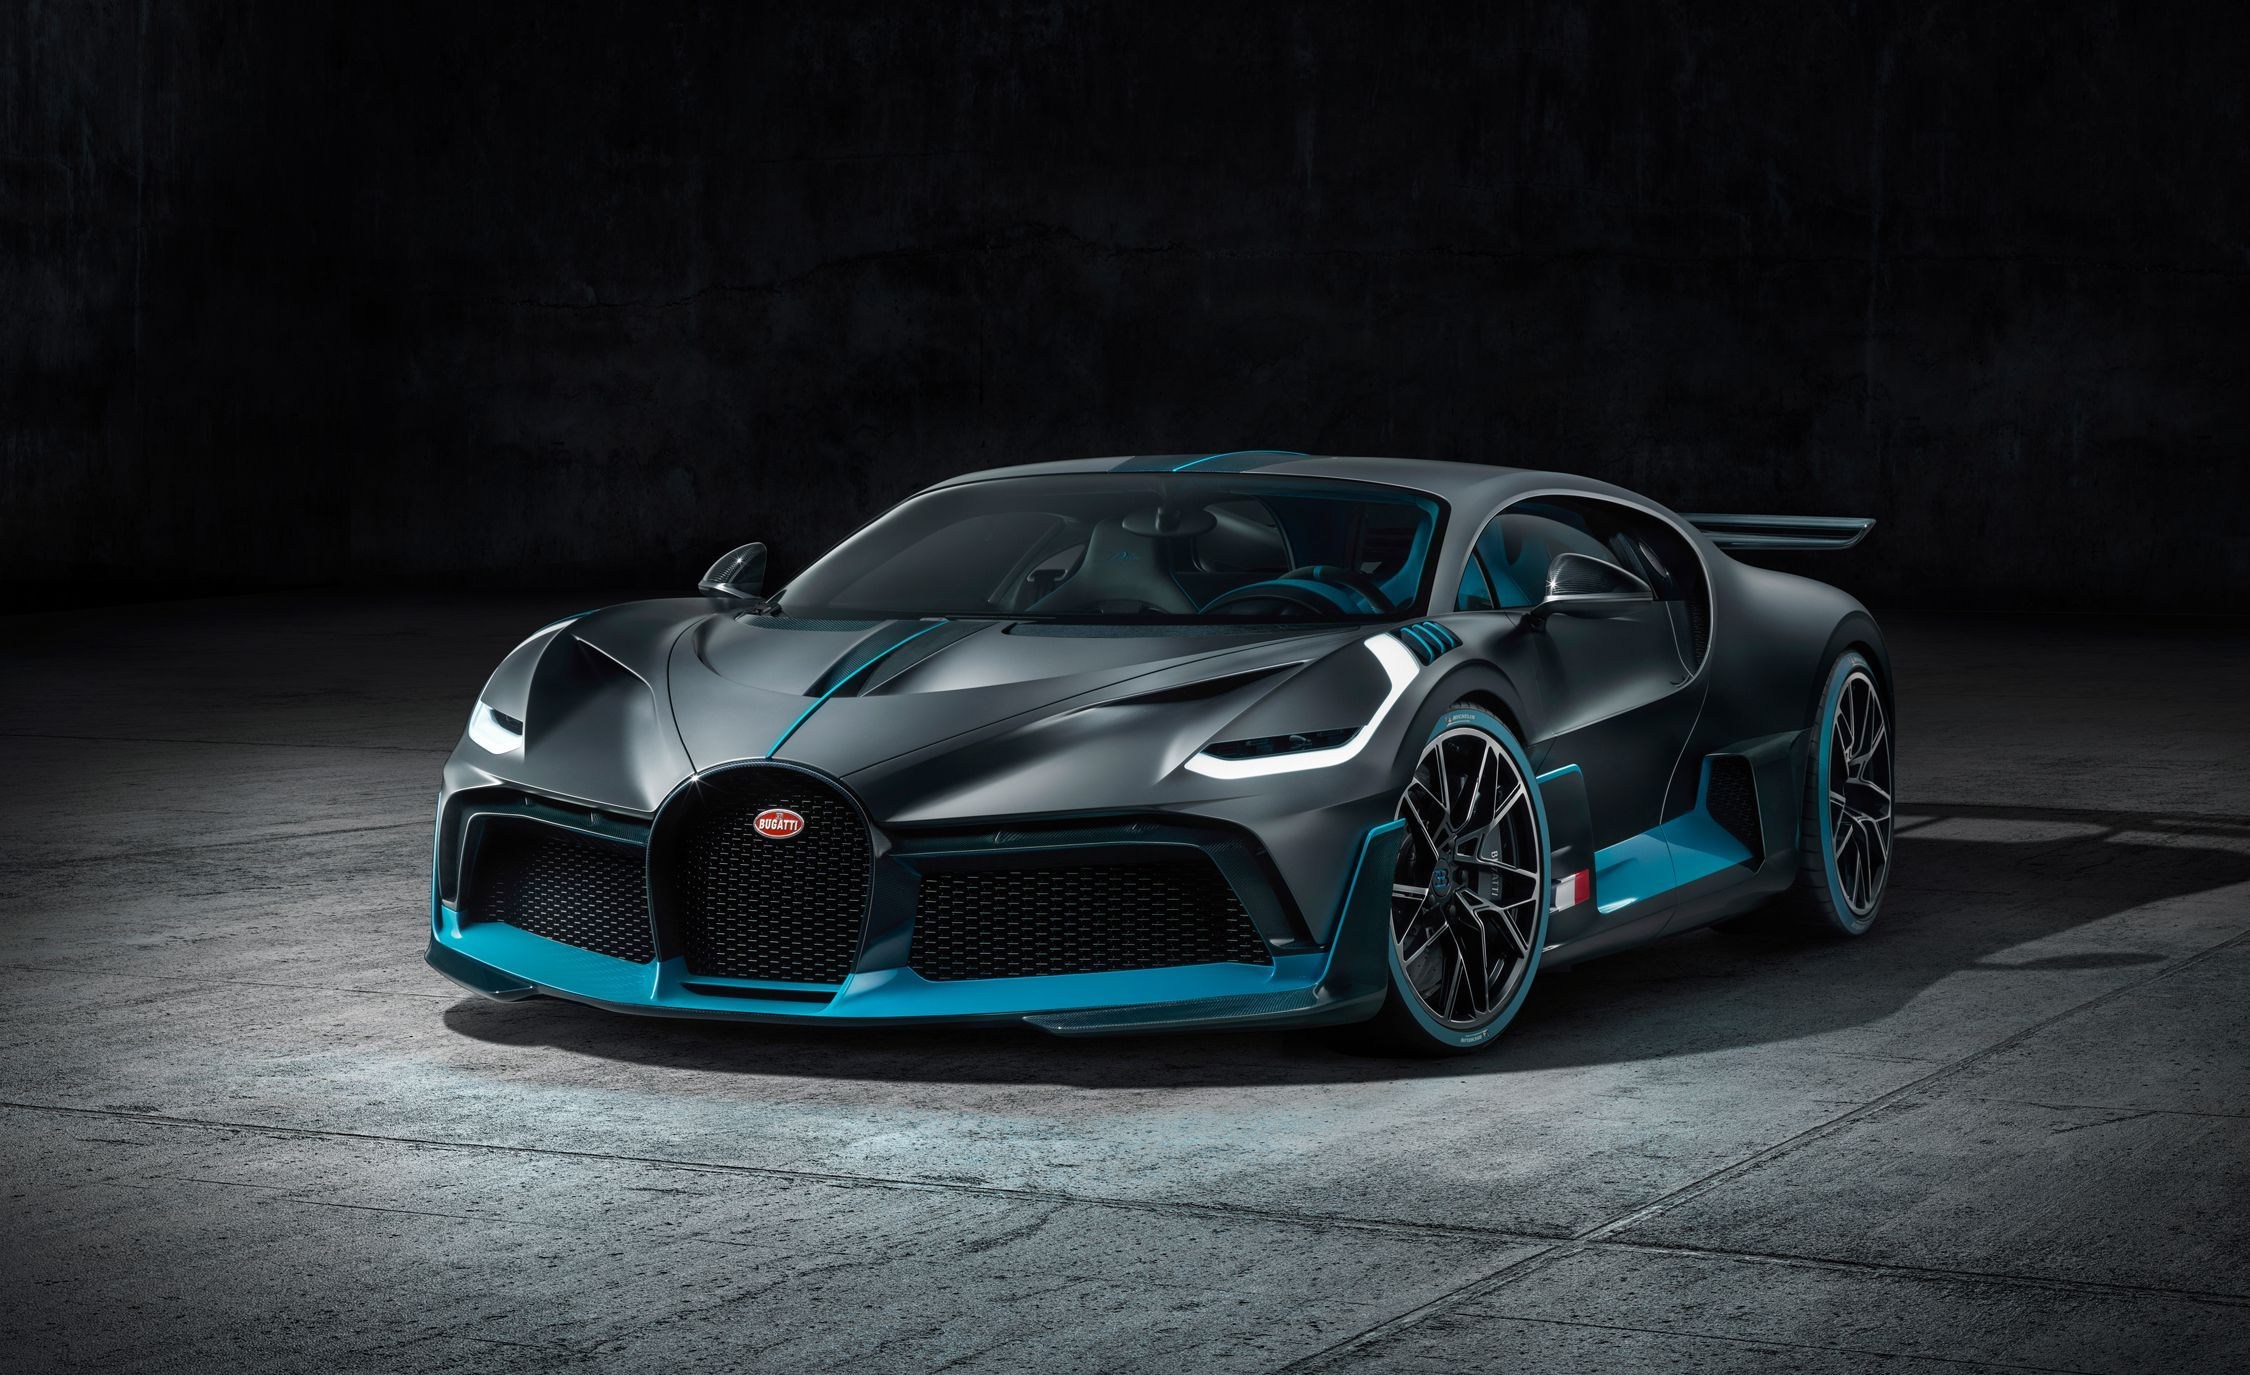 2020 Bugatti Divo Review, Pricing, and Specs